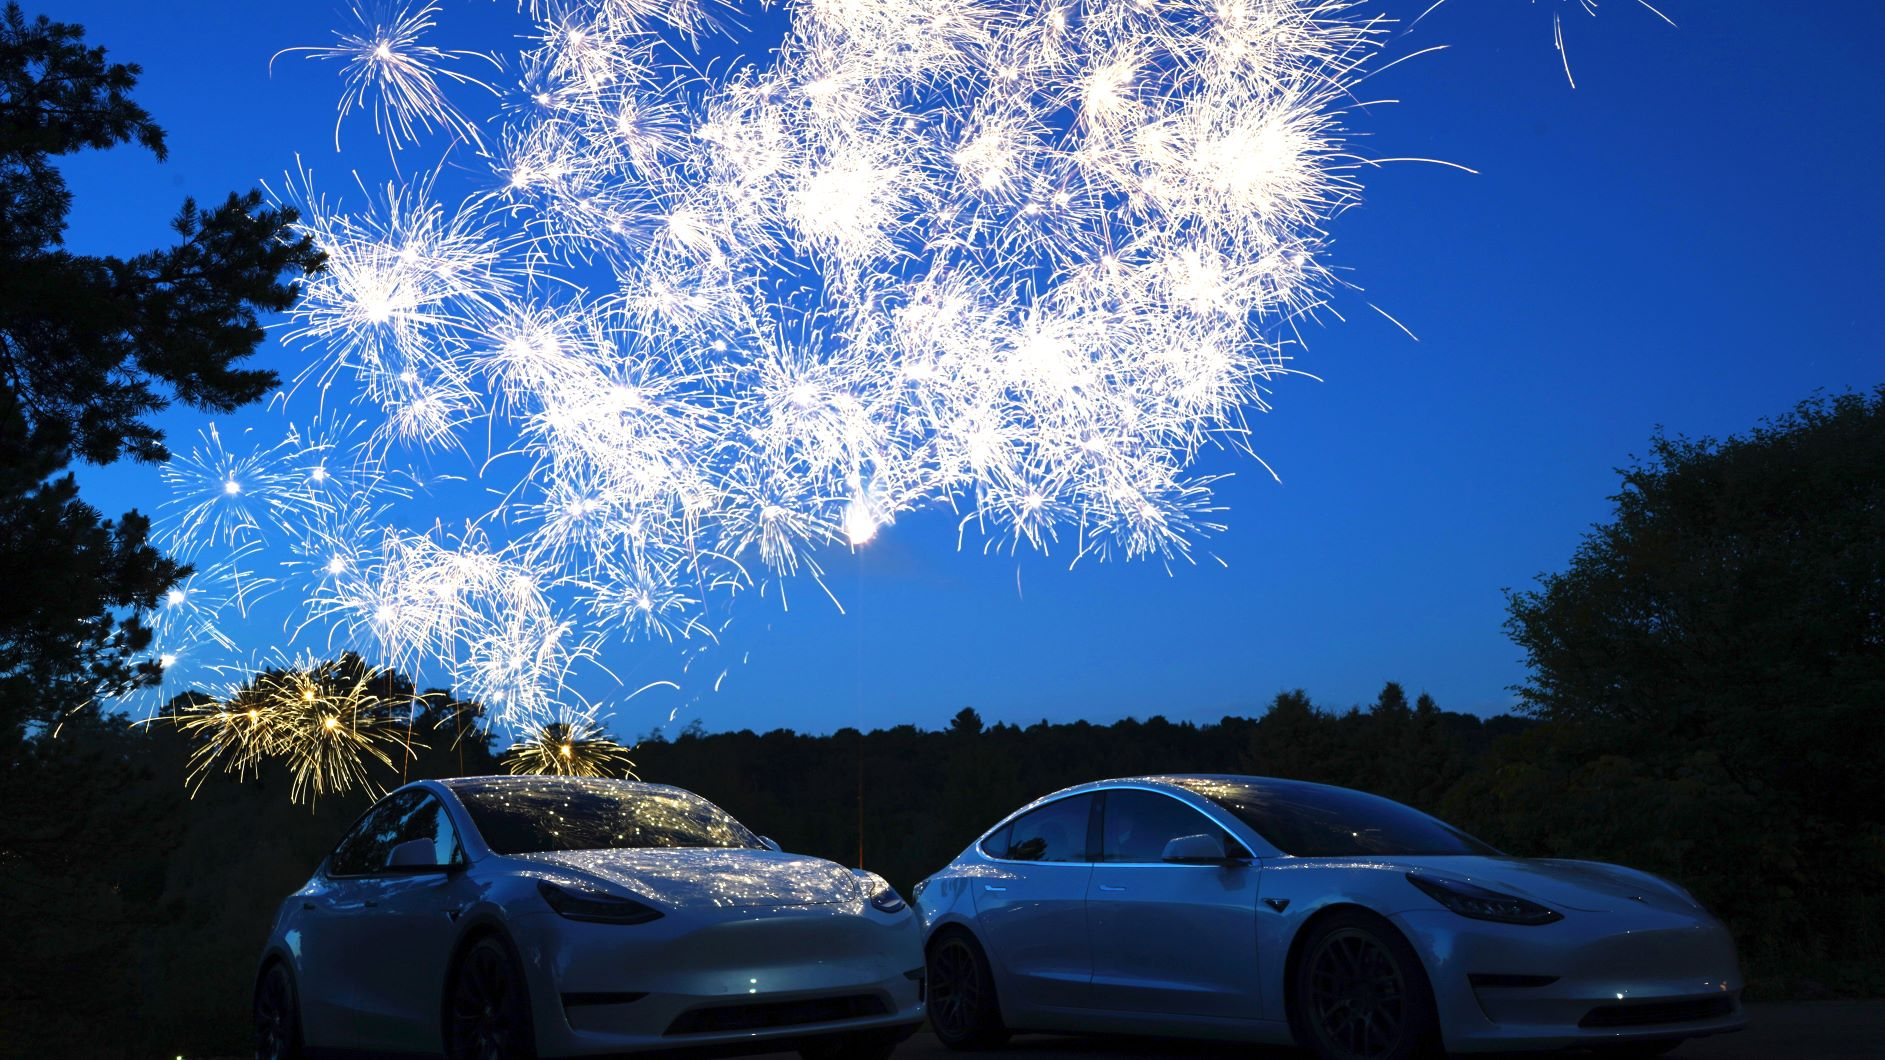 Tesla Shares TSLA Skyrocketing With Eye S&P500 Inclusion, Bears Add $20B Shorts